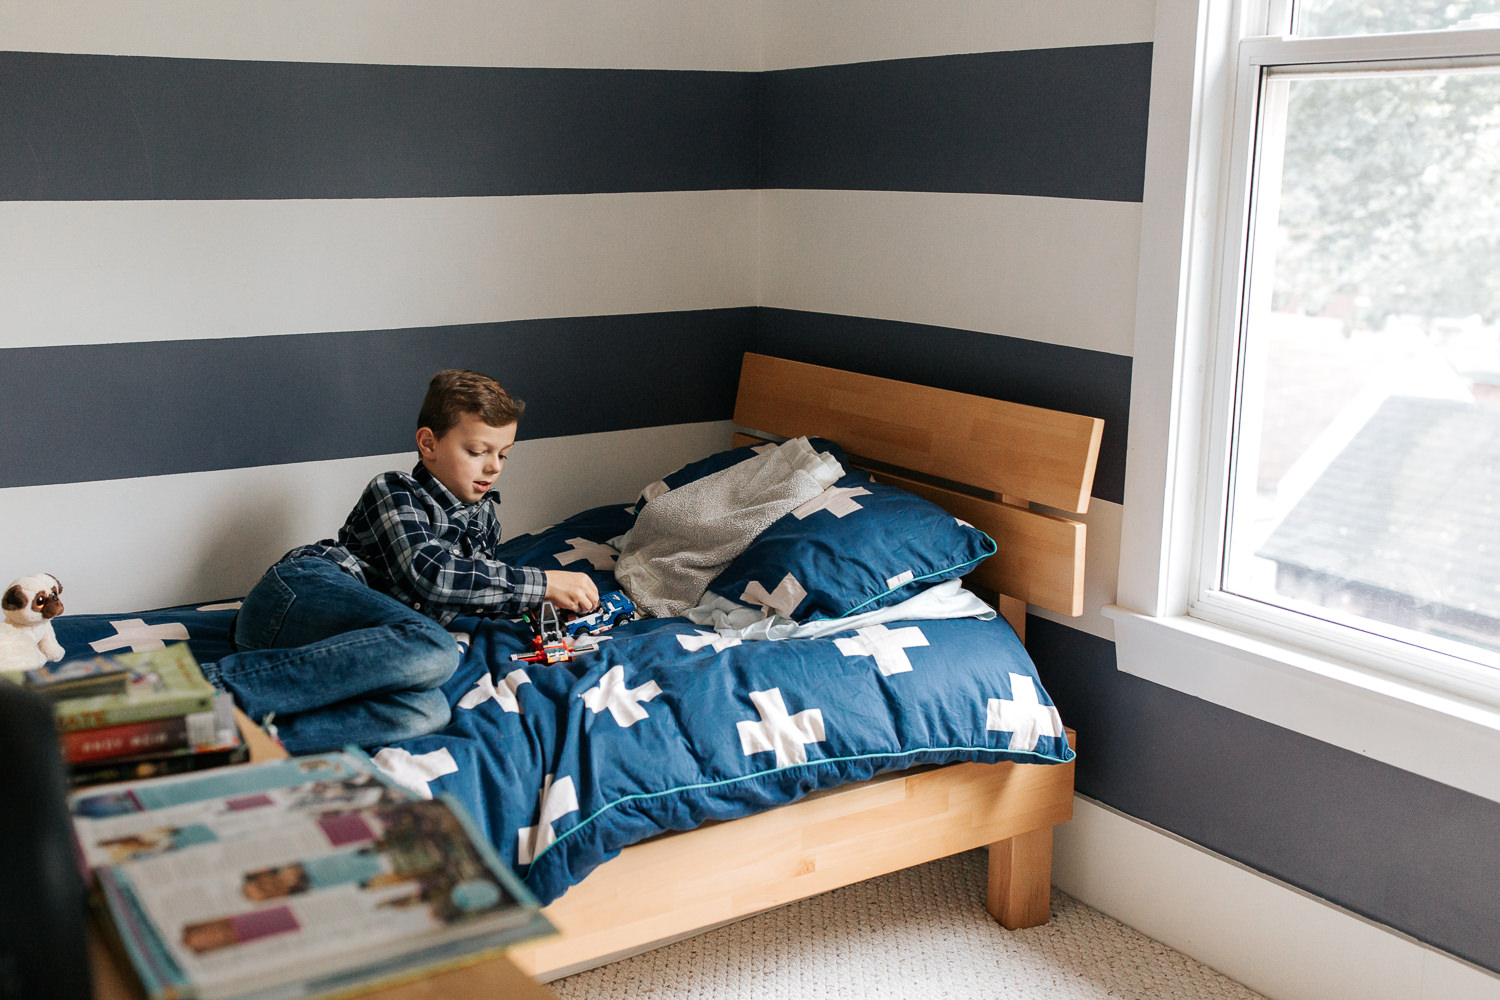 9 year old boy in plaid shirt with light brown hair lying on bed in blue and white room playing with lego - Barrie In-Home Photography